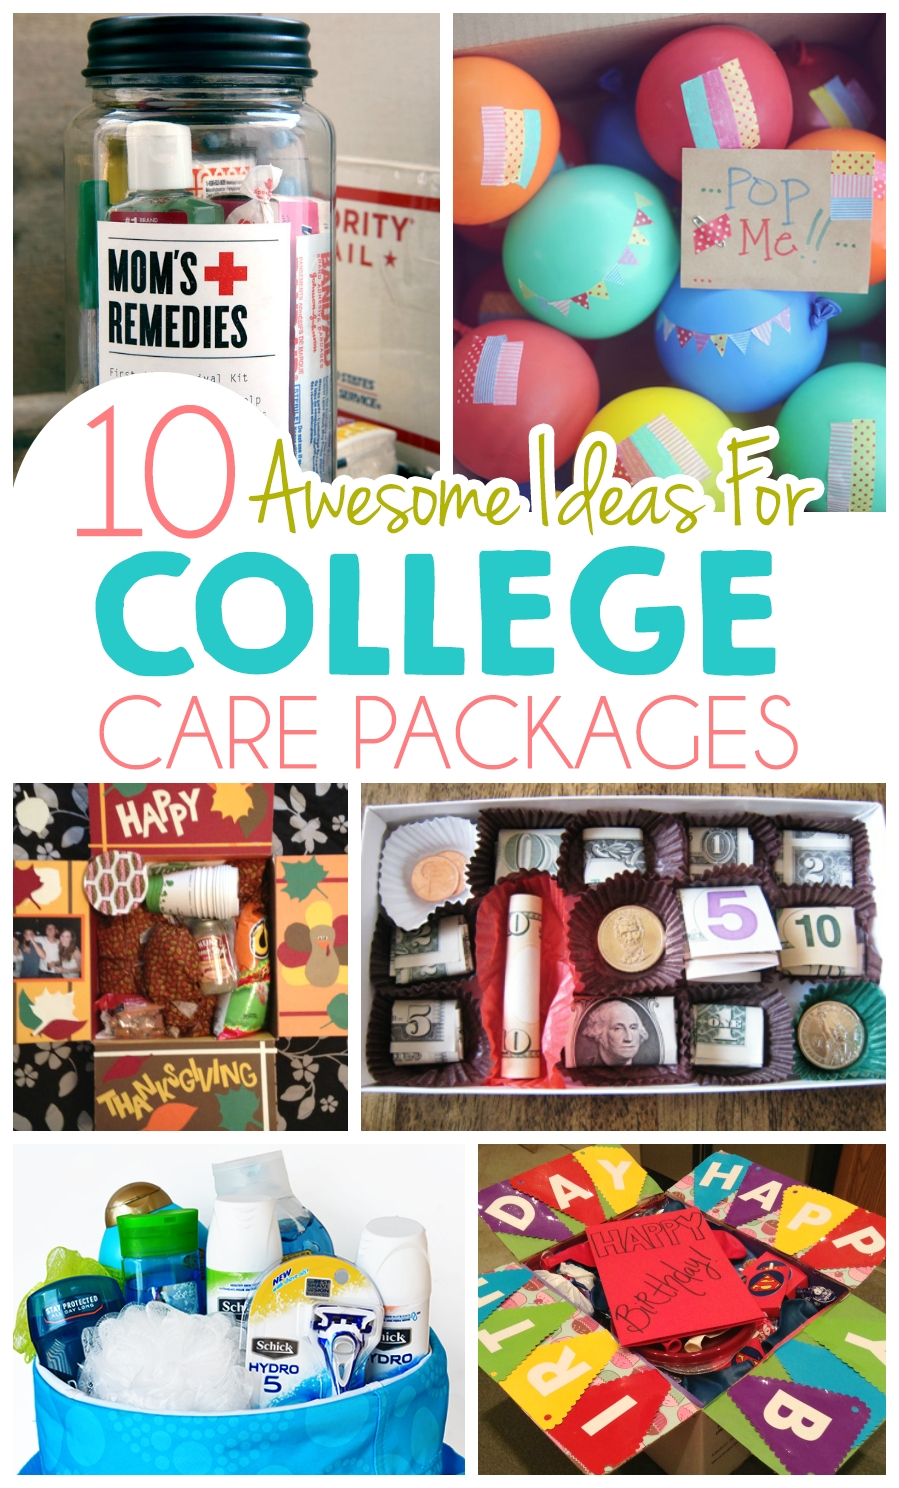 10 ideas for college care packages | college, ads and gift